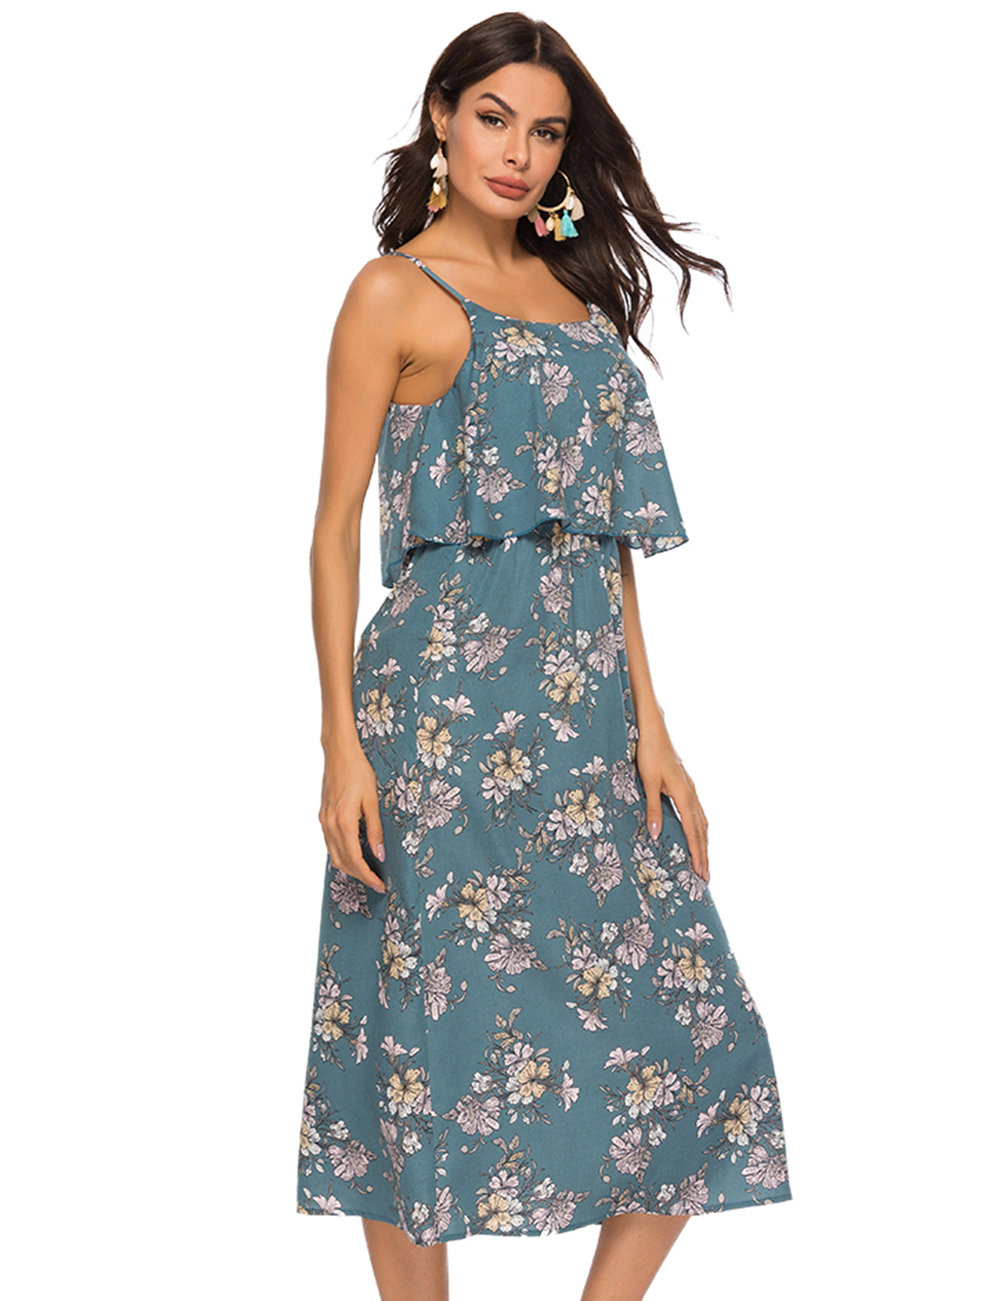 //cdn.affectcloud.com/feelingirldress/upload/imgs/2019-06-04/VZ190494-BU1/VZ190494-BU1-6.jpg